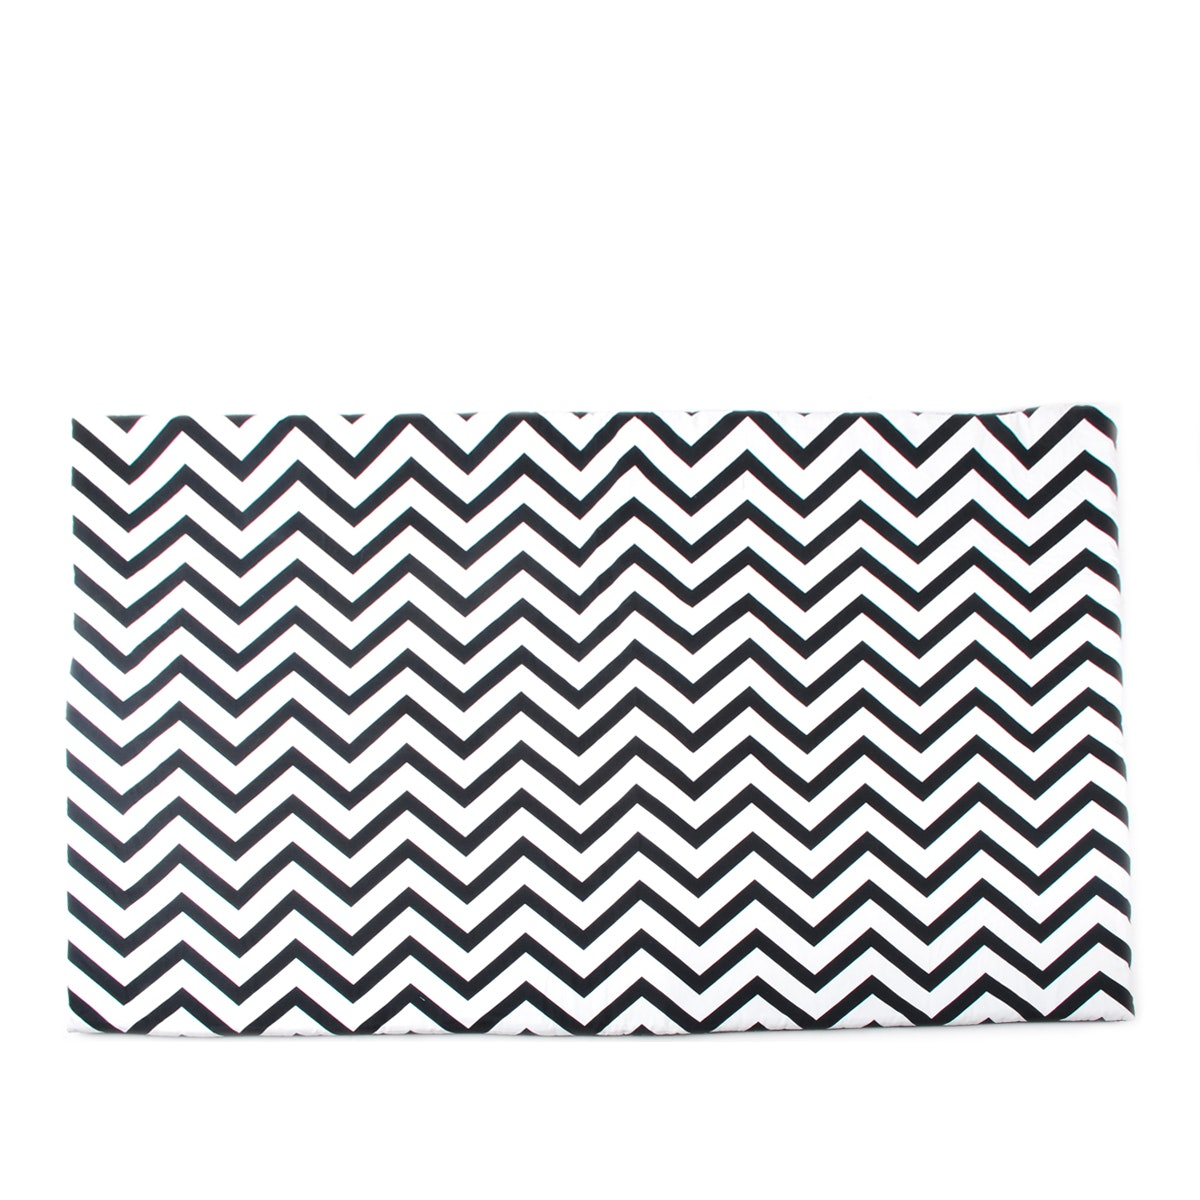 Glerry Home Decor Black Chevron Rug 140x200cm